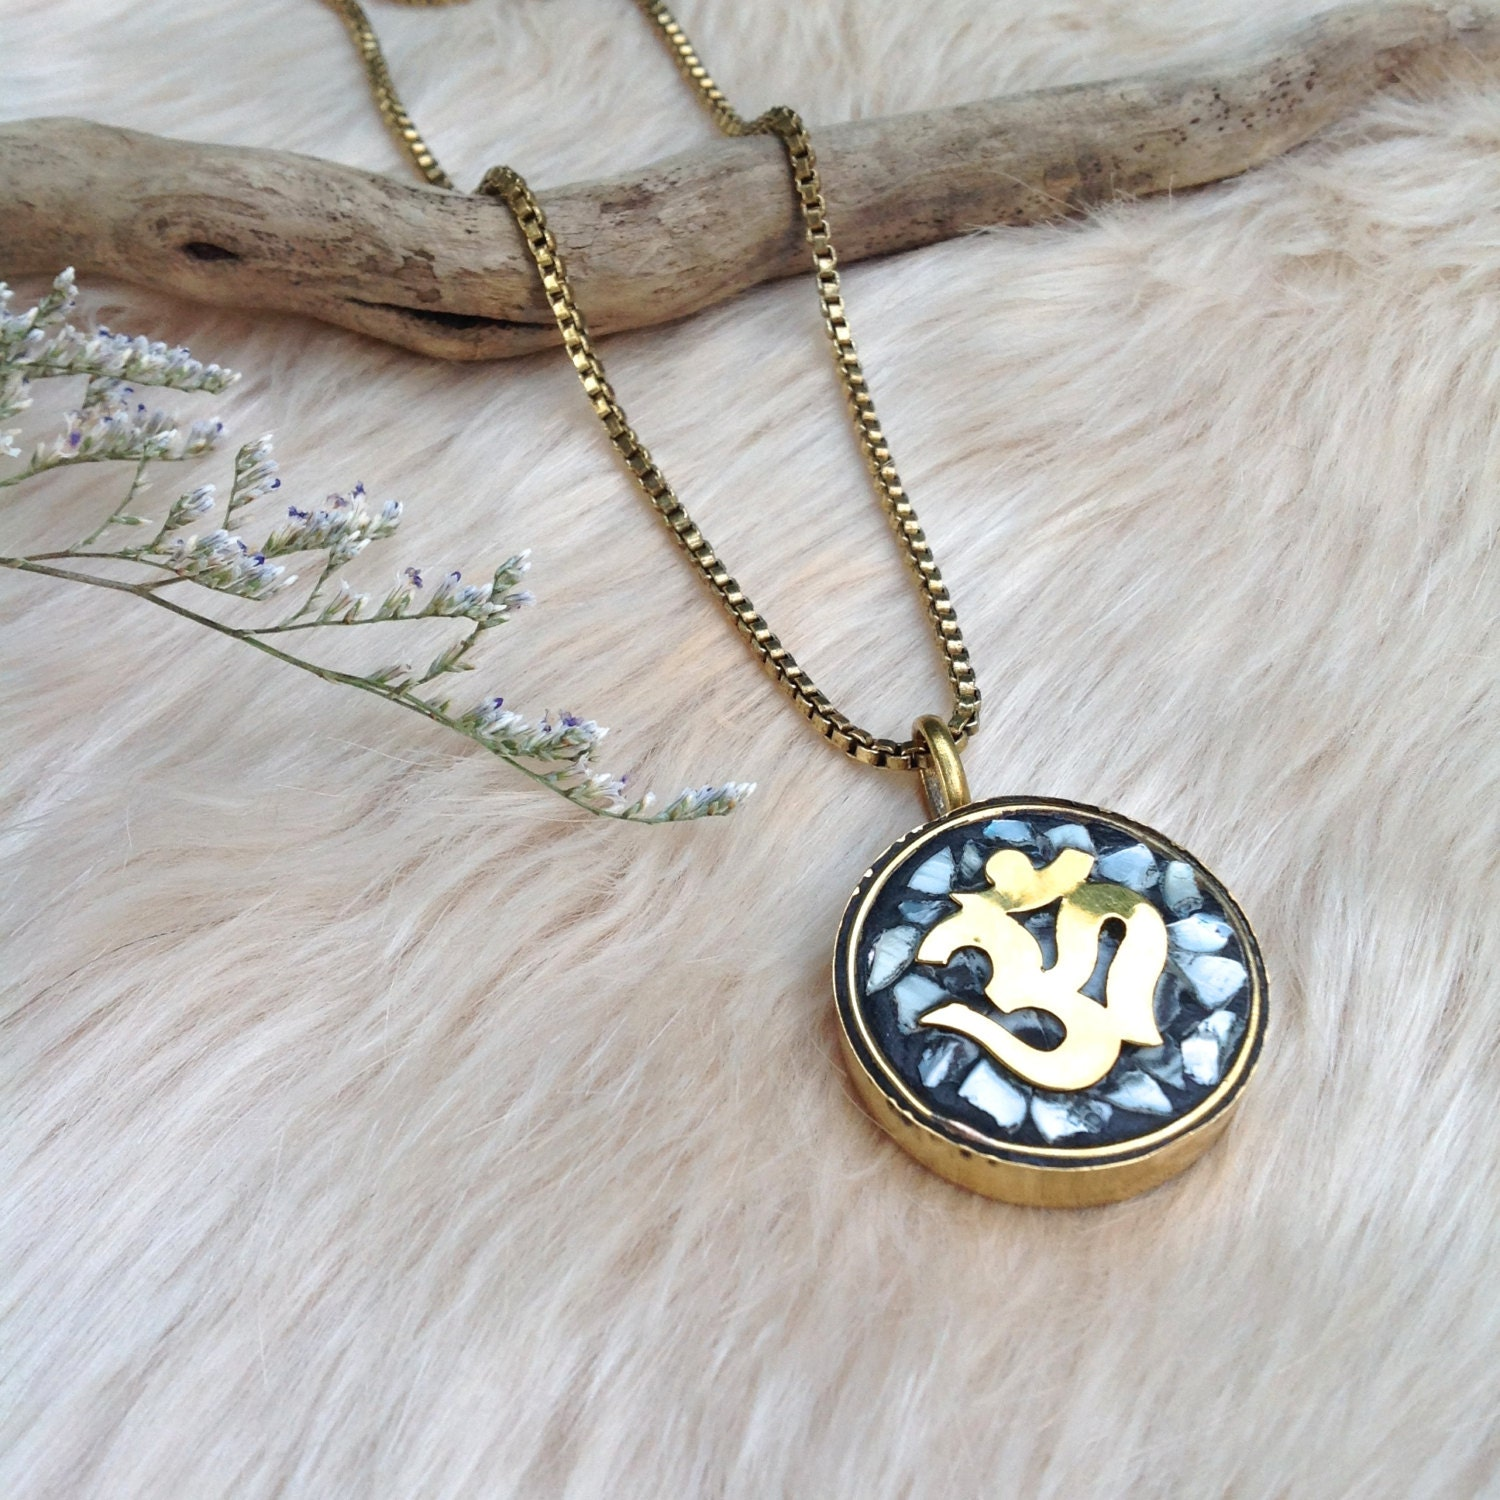 maila om necklace om pendant jewelry gifts